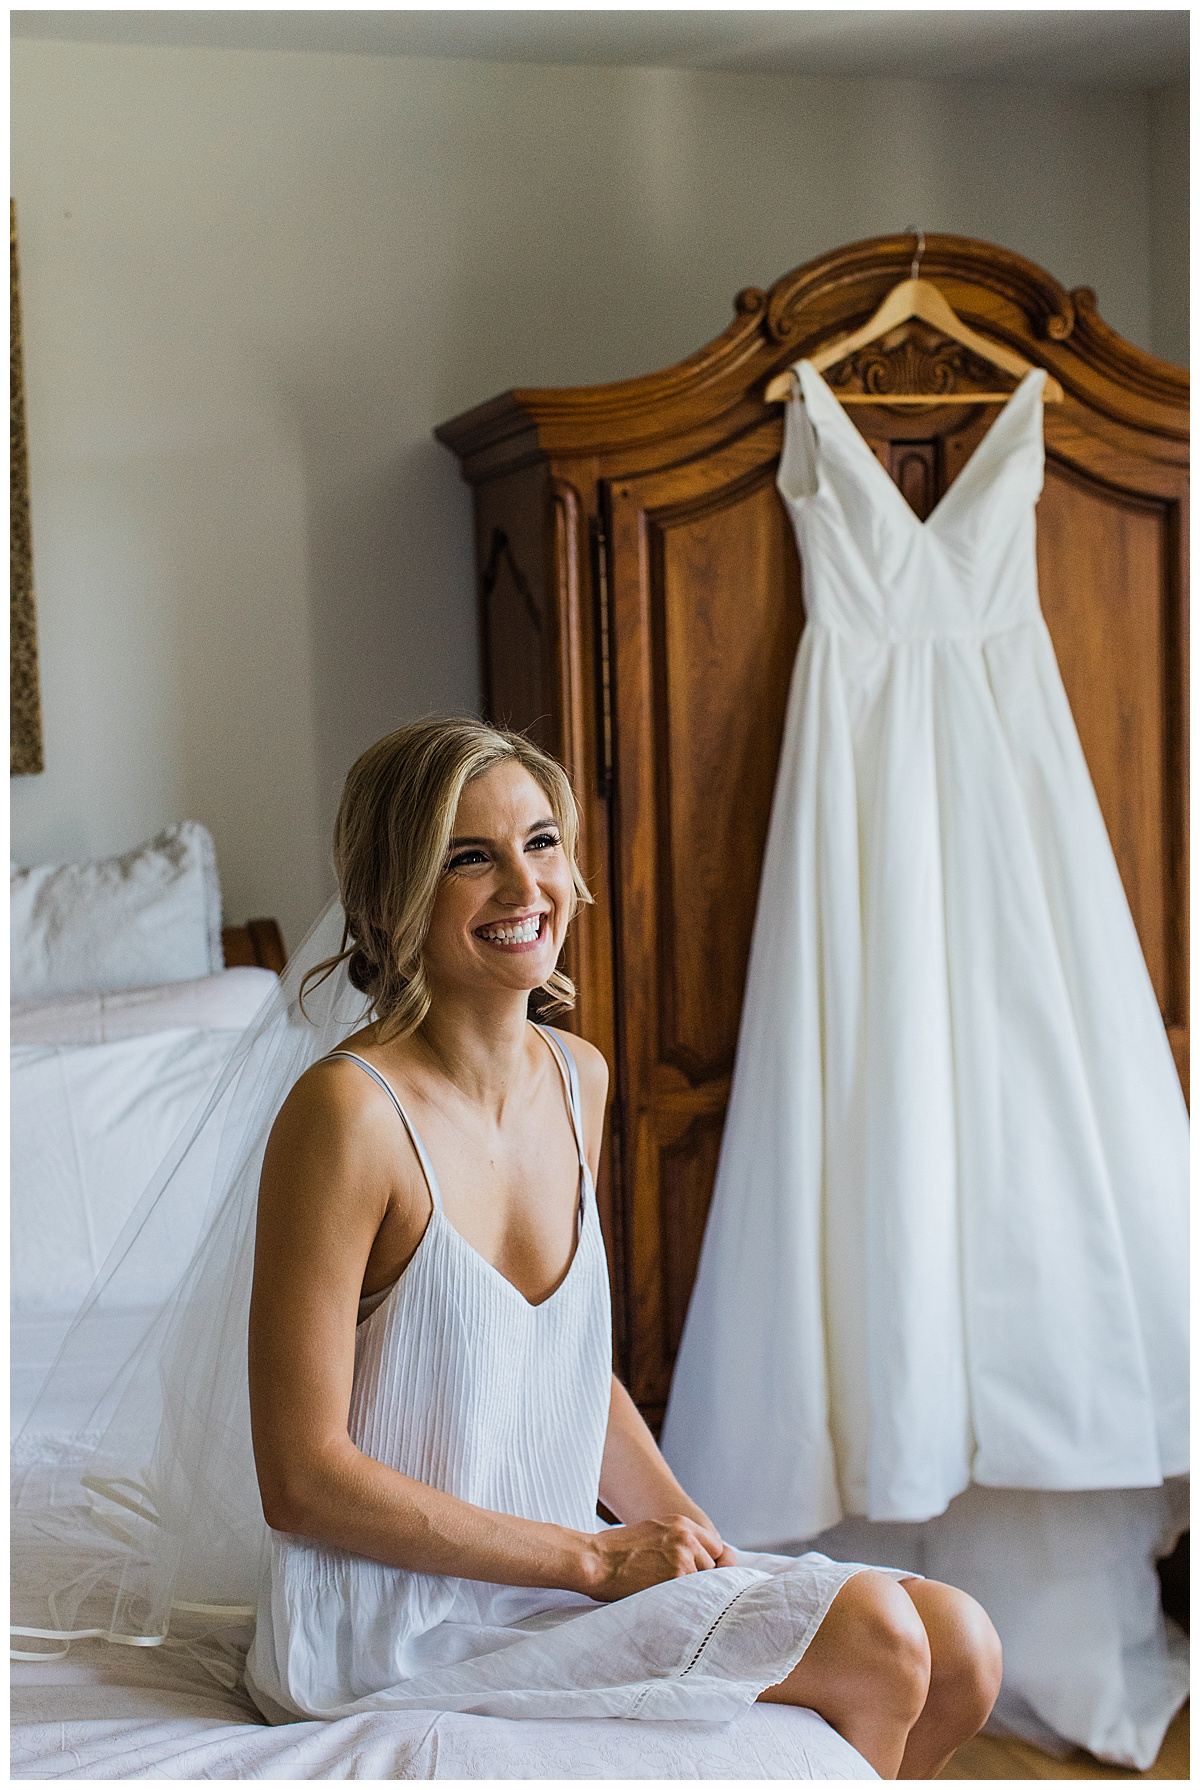 Bride sitting on bed smiling big with gown hanging on amour behind her| Georgetown, Ontario wedding|  Toronto wedding photographer| 3photography